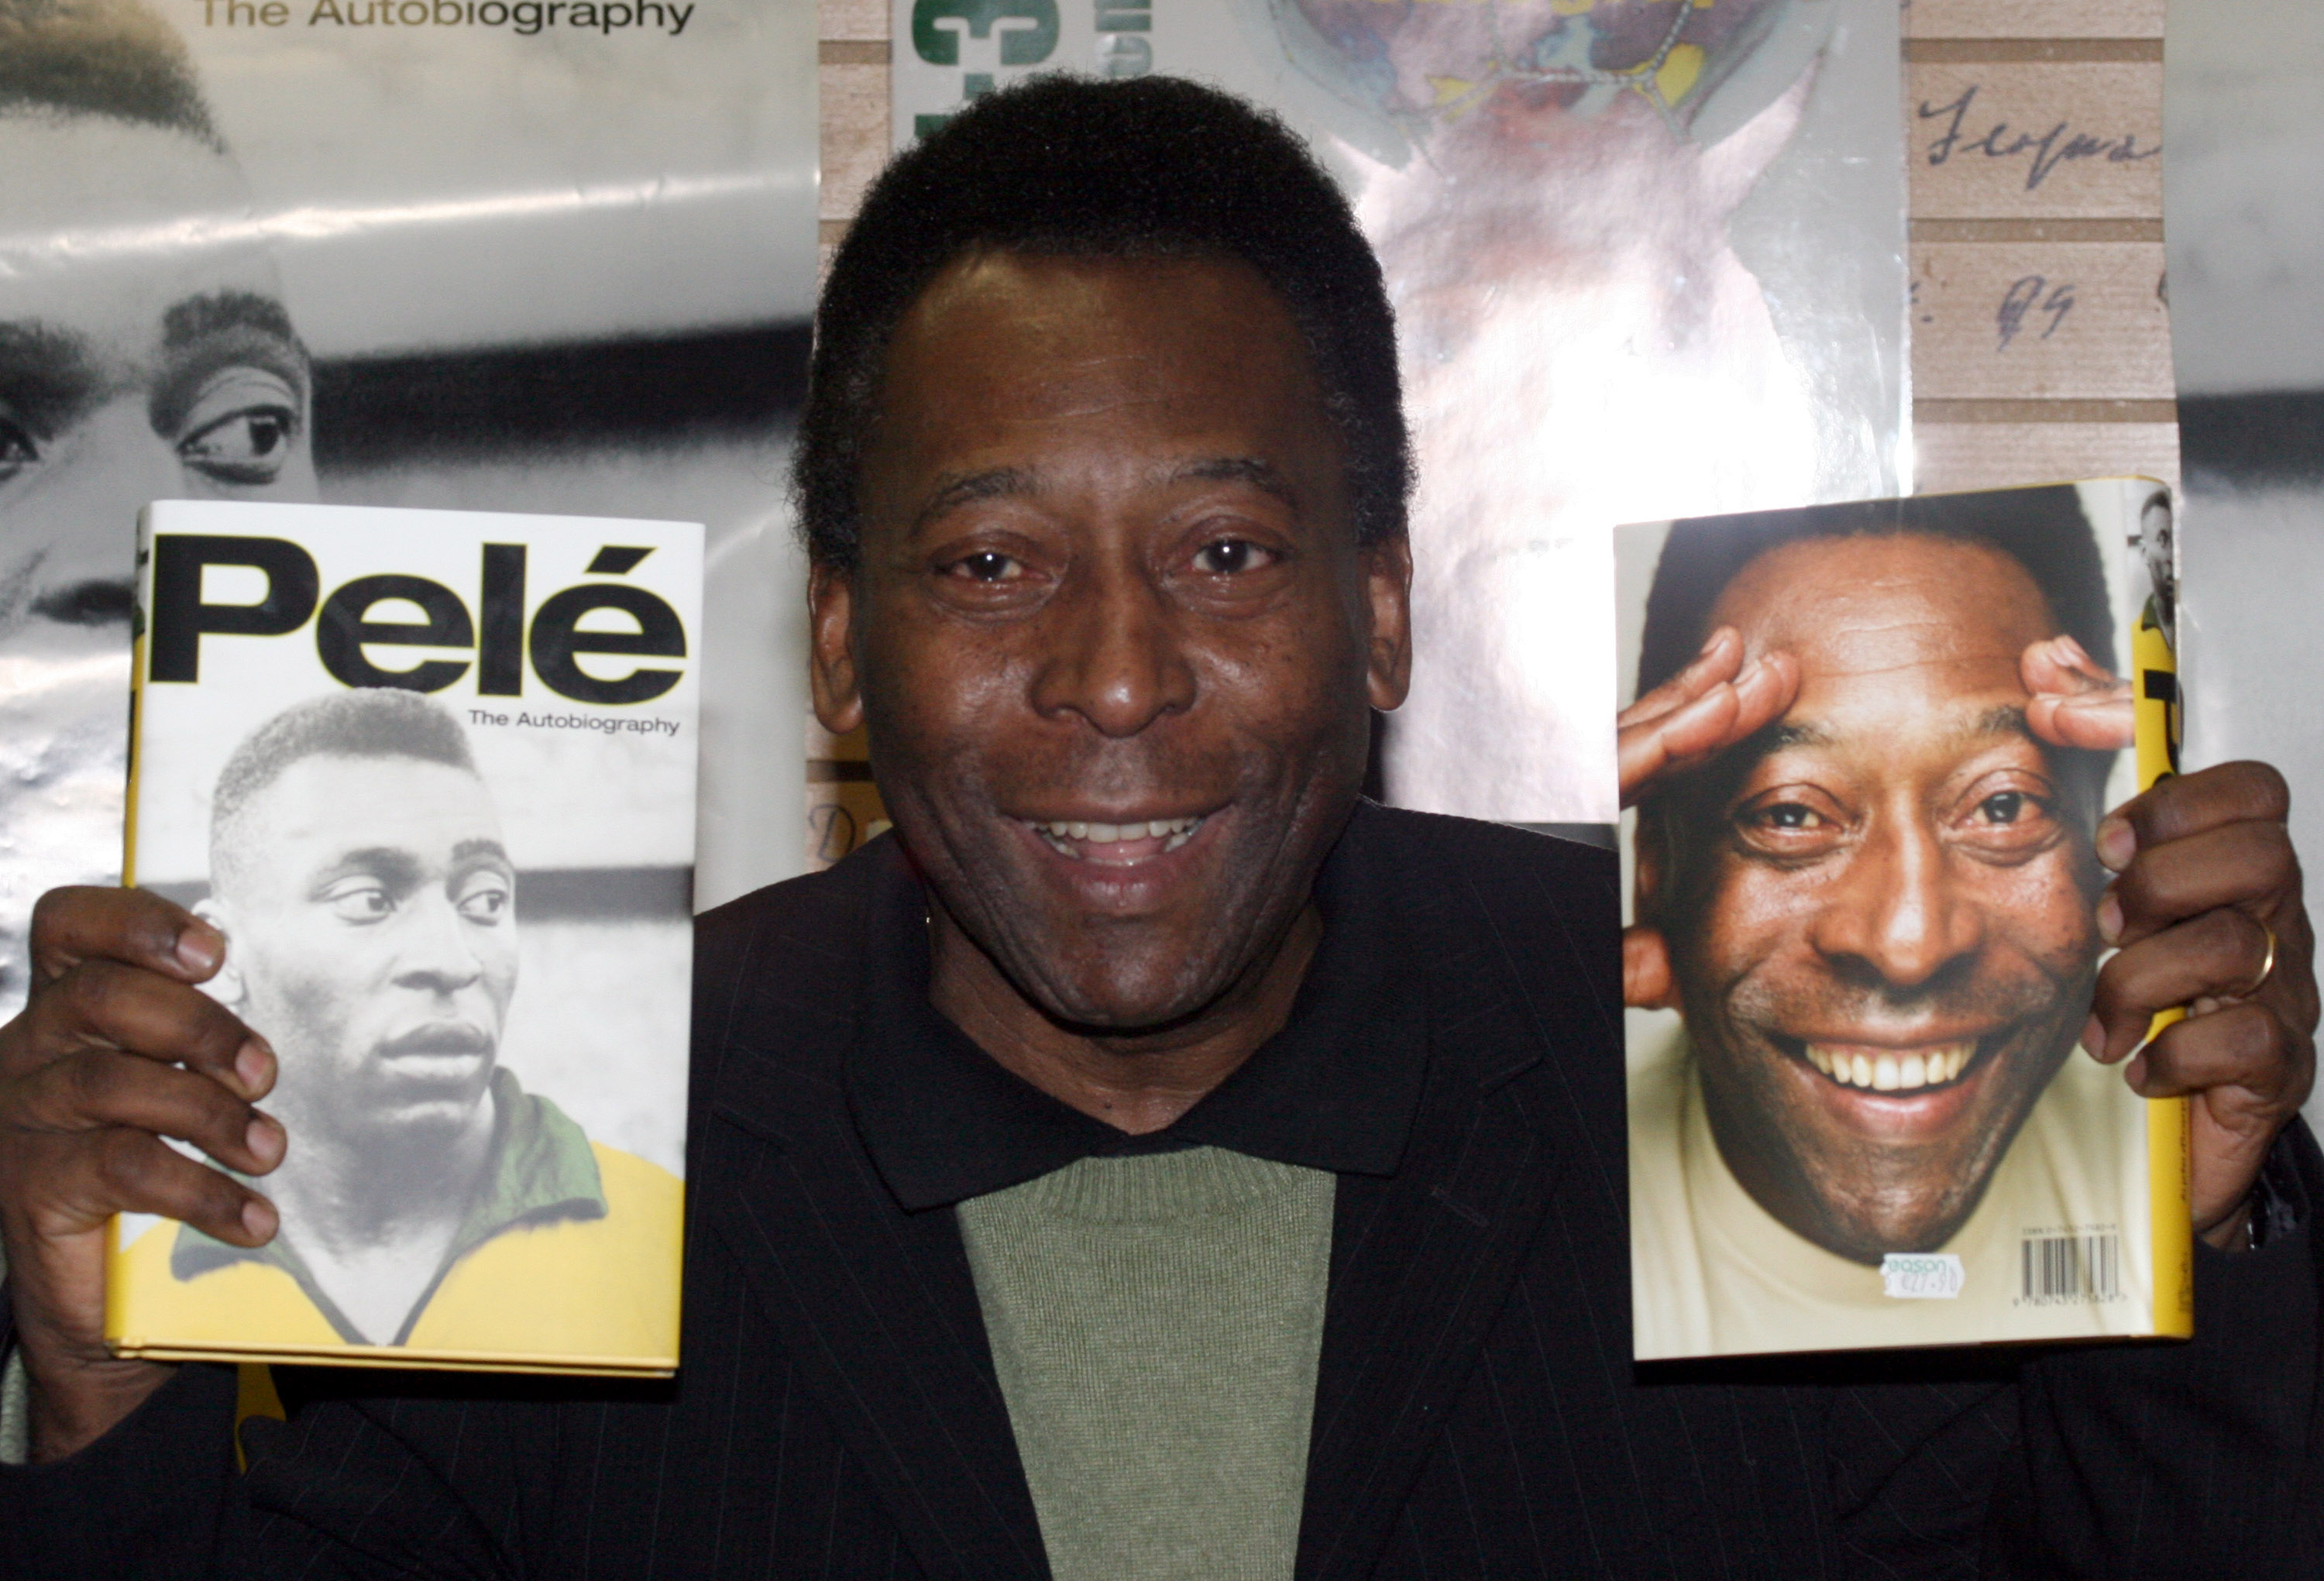 Soccer star Pelé during a book signing in 2006